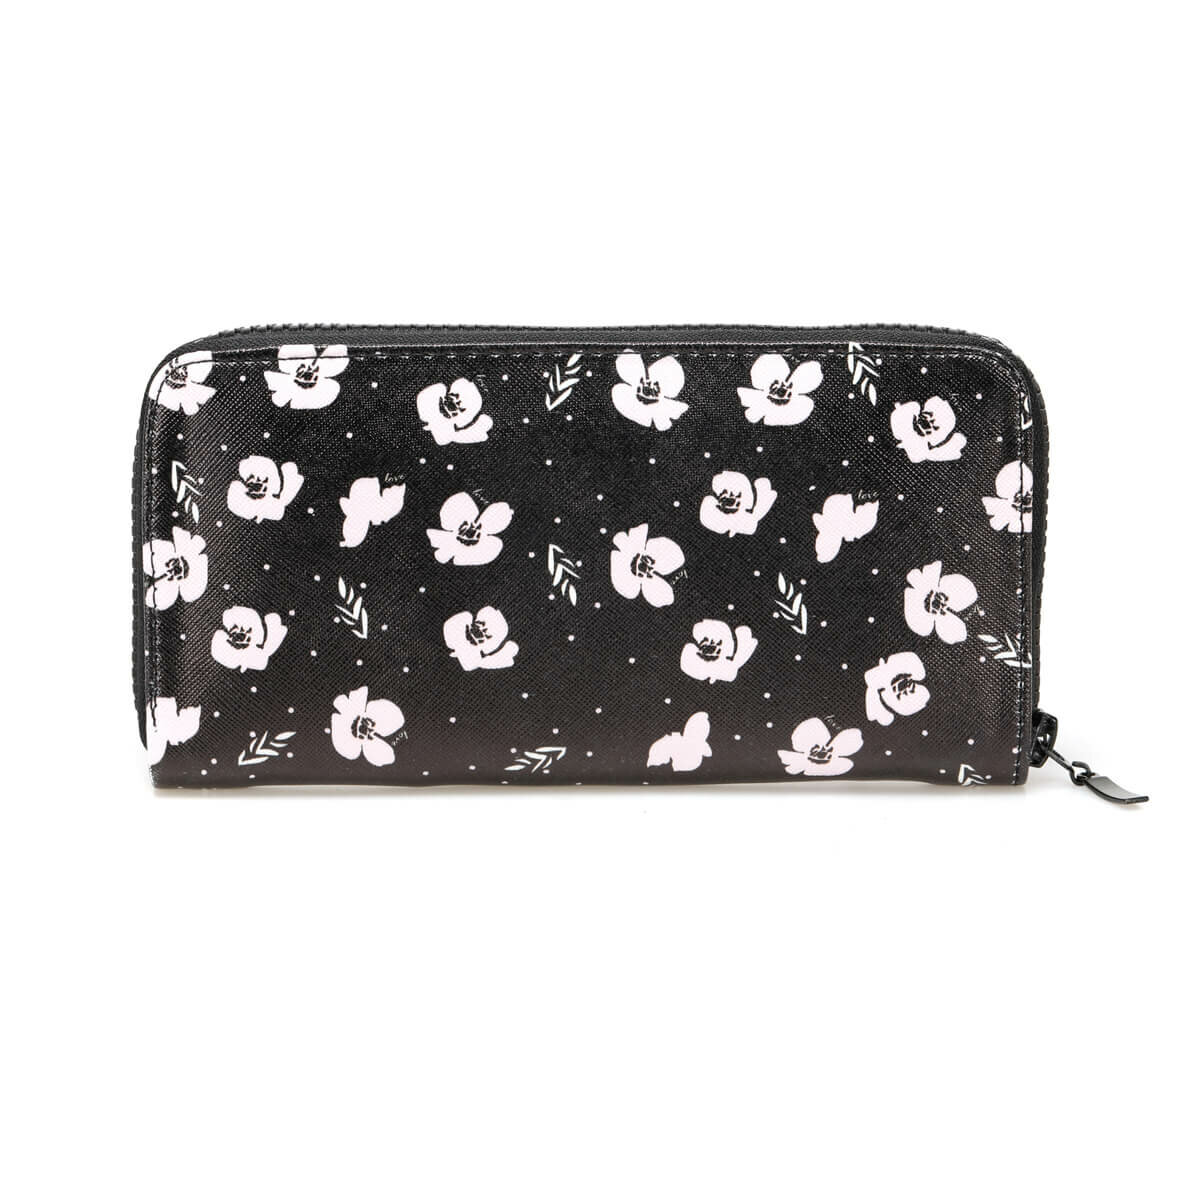 FLO 91.968.008.D Black Women 'S Wallet Polaris